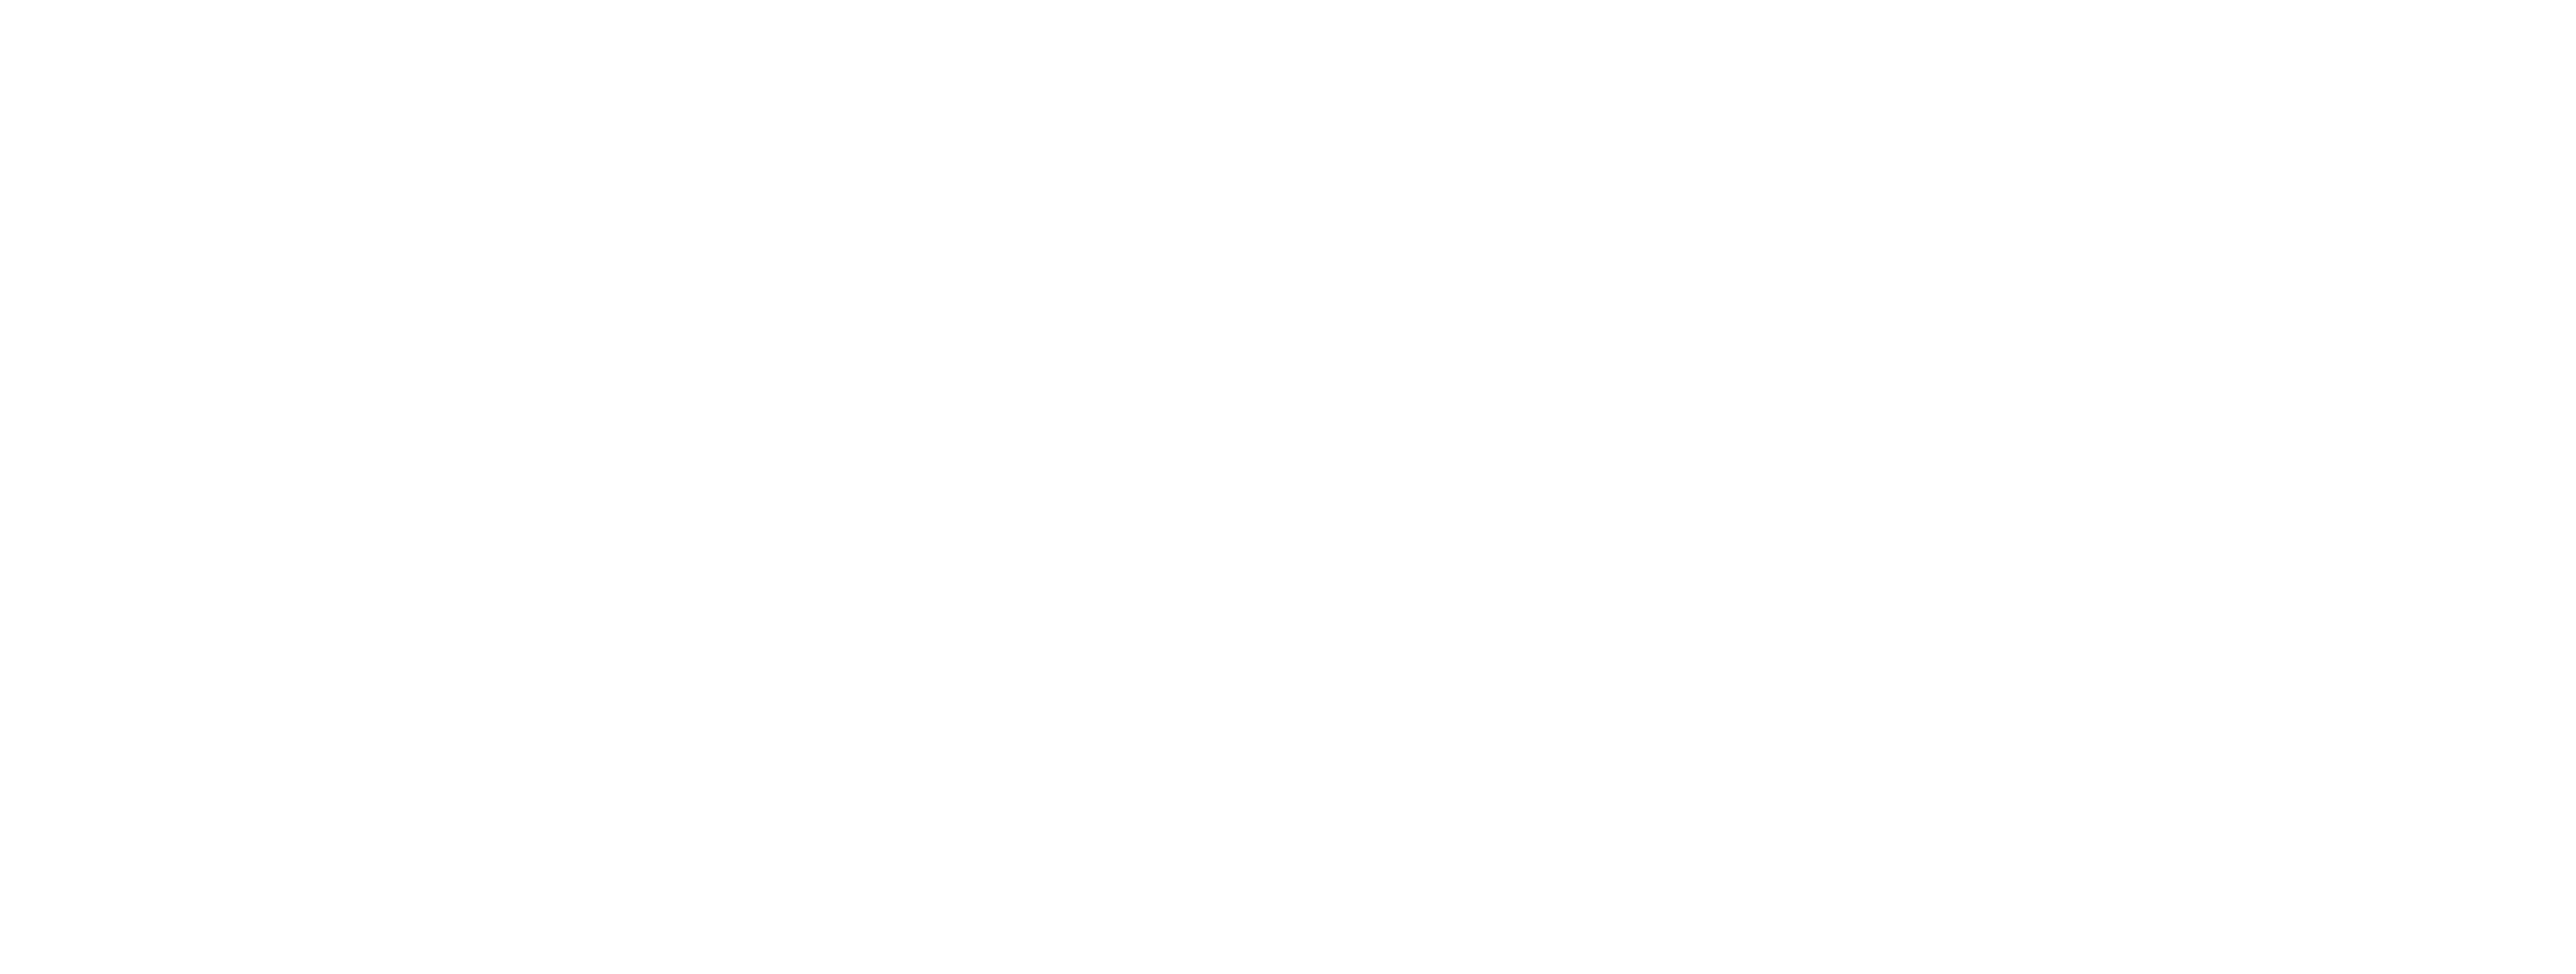 Agile Vehicle Technologies